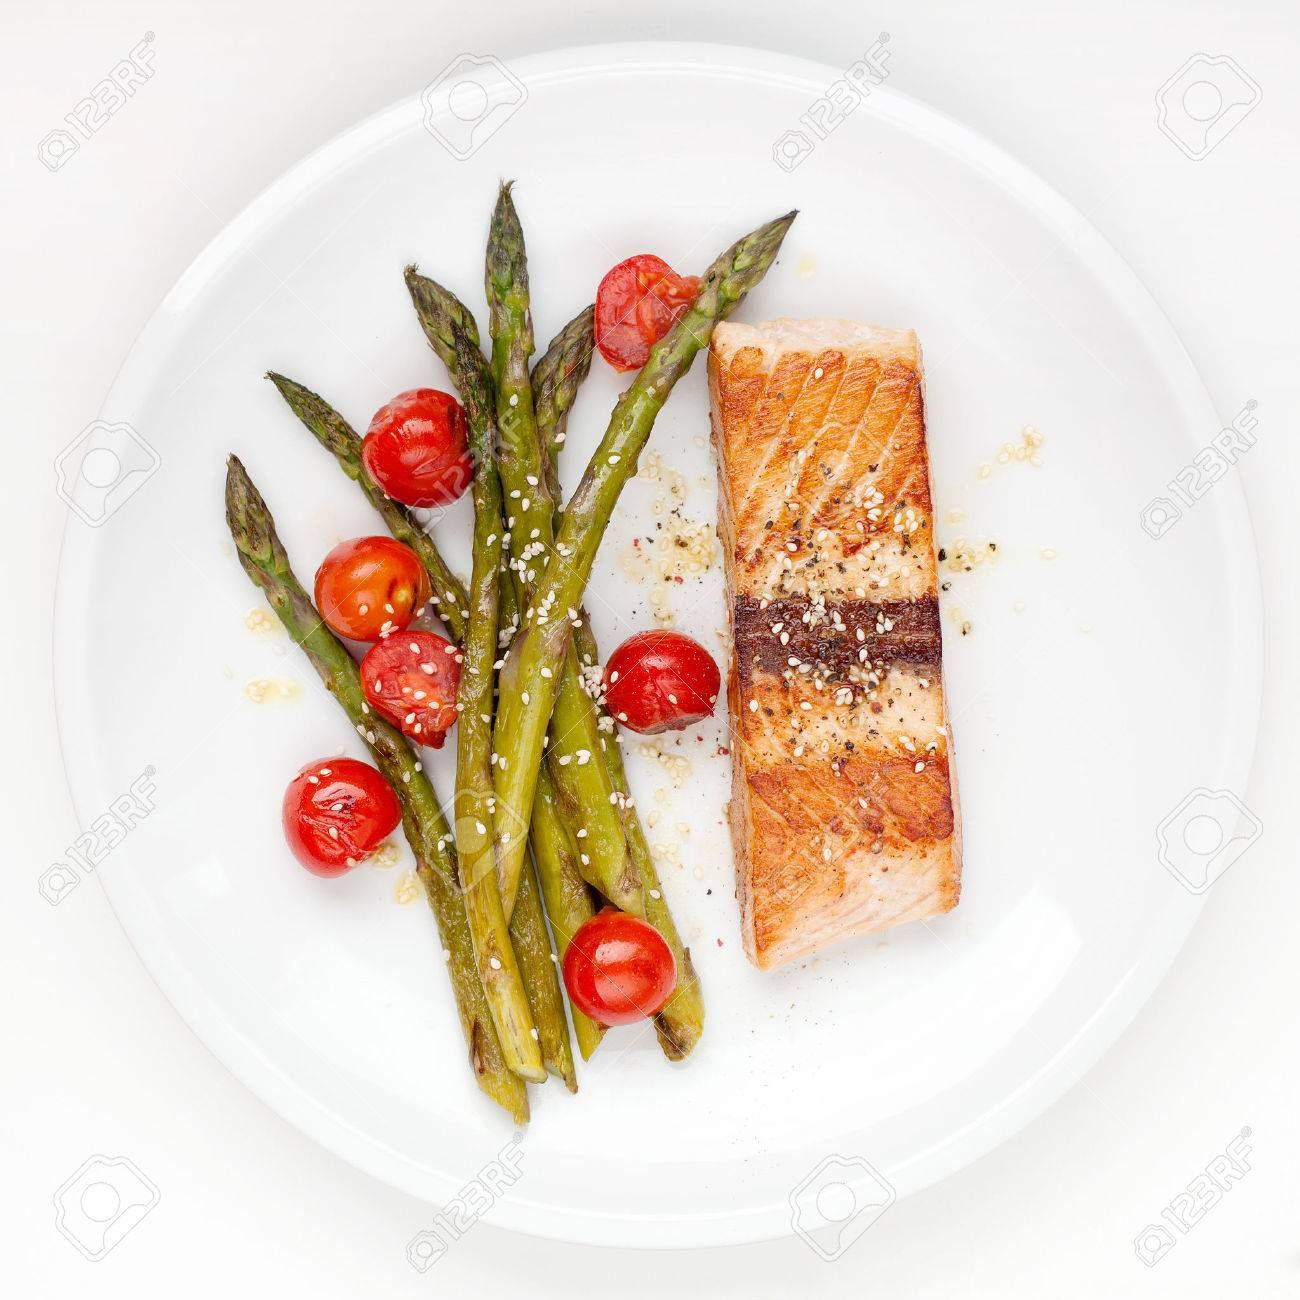 Salmon fillet with asparagus and cherry tomatoes on white plate - 27939939